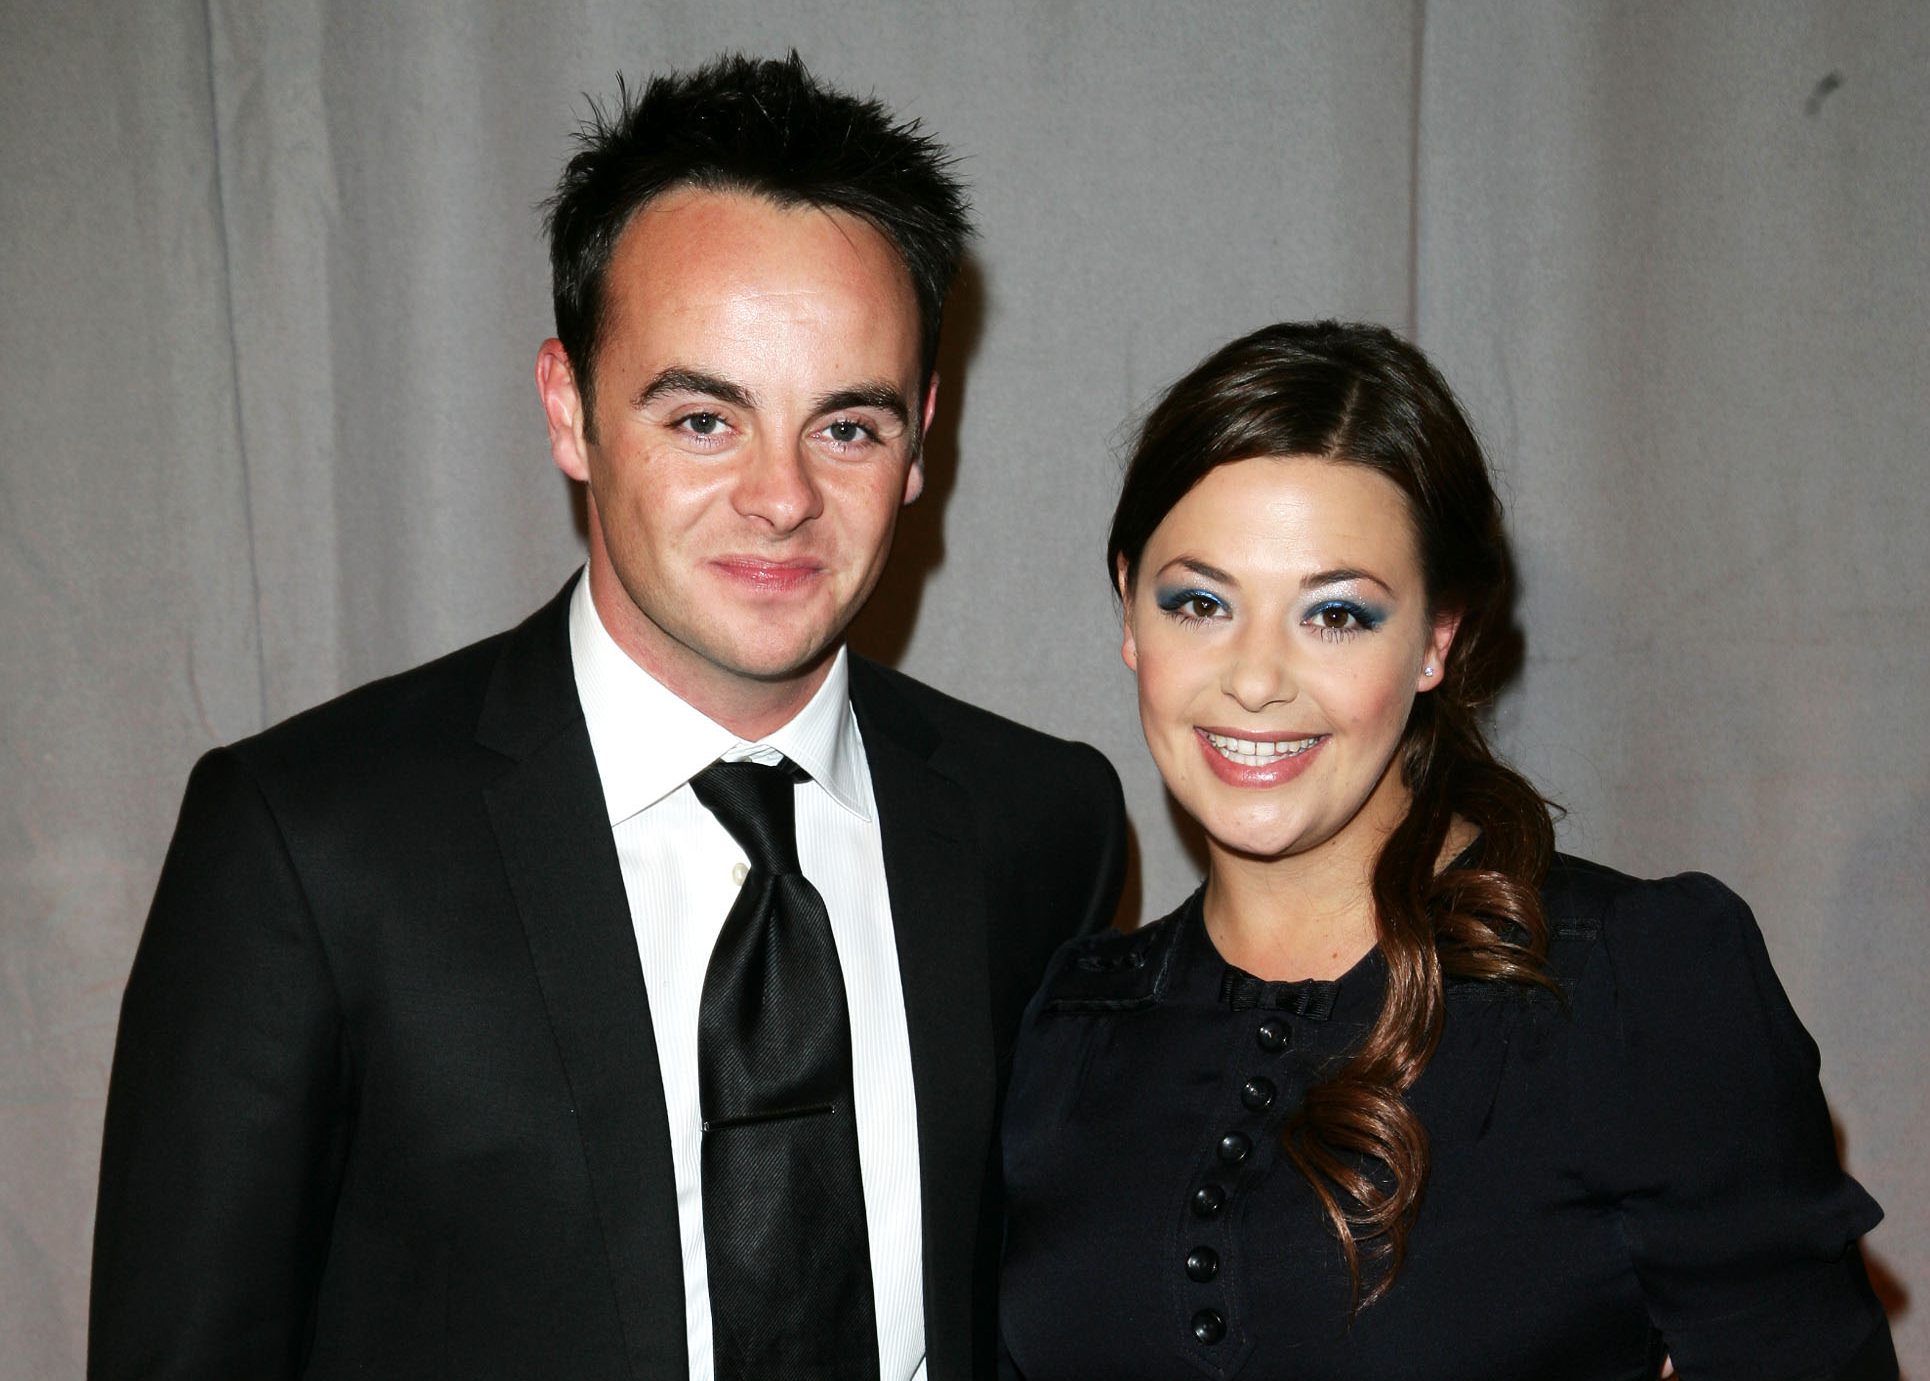 Why did Ant McPartlin and wife Lisa Armstrong split and what have they said about their marriage?